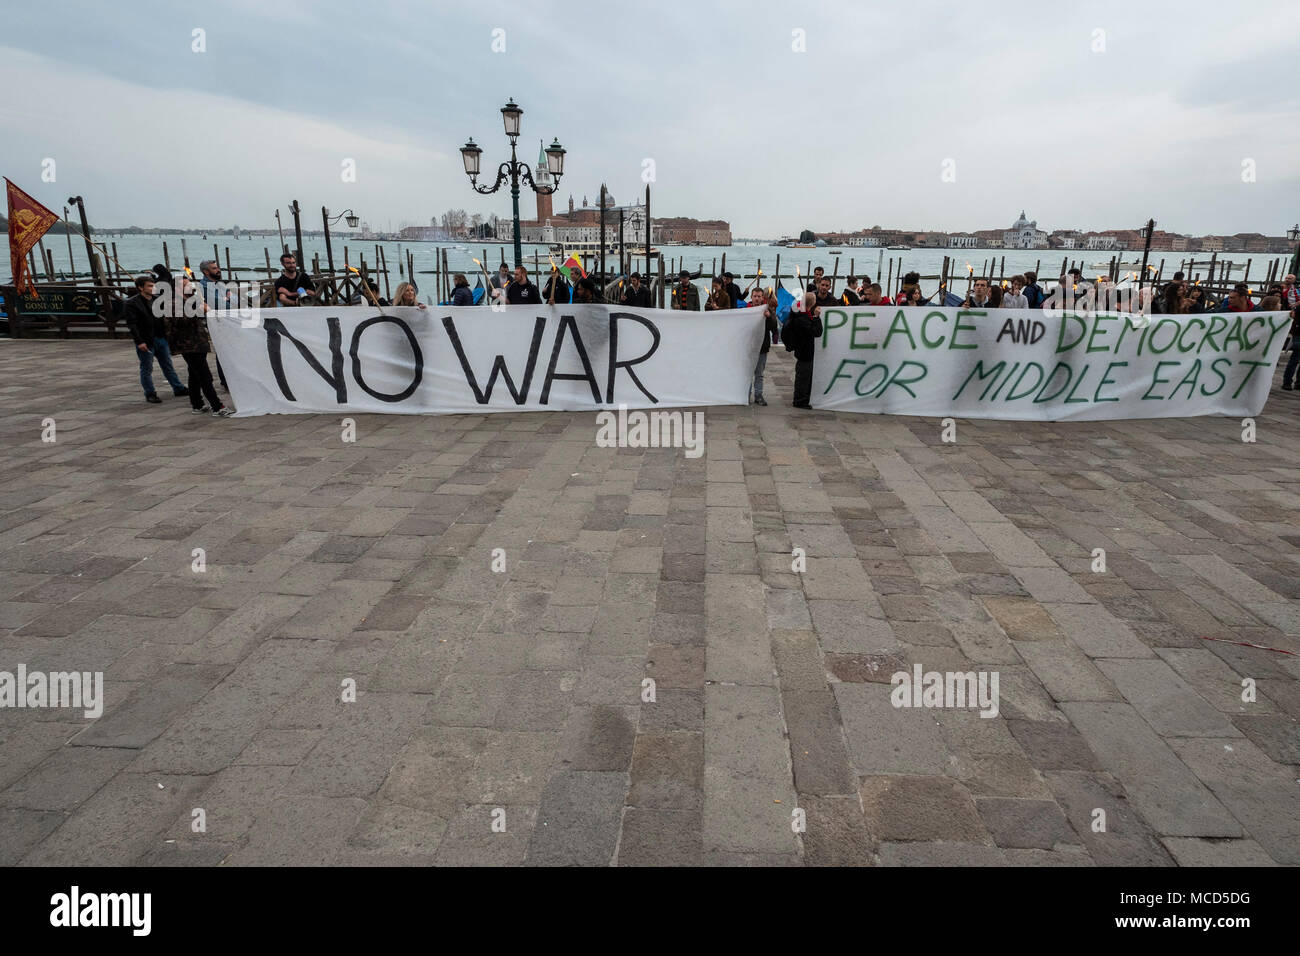 Venice, ITALY. 15 April, 2018. No to the war in Syria: a peaceful demonstration today in Venice of the Social Centers, which marched in Piazza San Marco to support the Syrian people. © Stefano Mazzola/Awakening - Stock Image